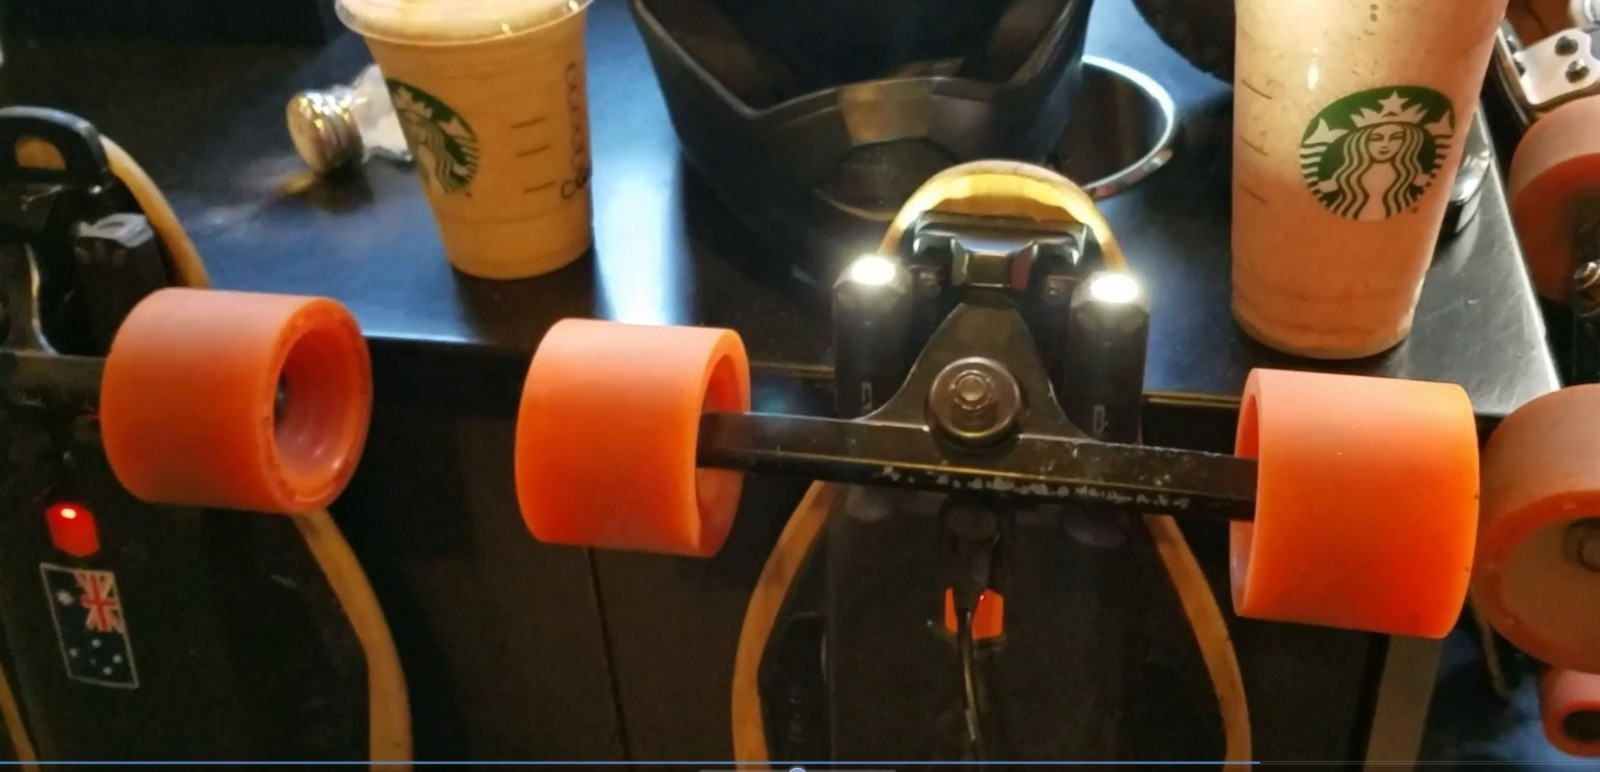 The Best Accessories For Boosted Board Evolve Inboard